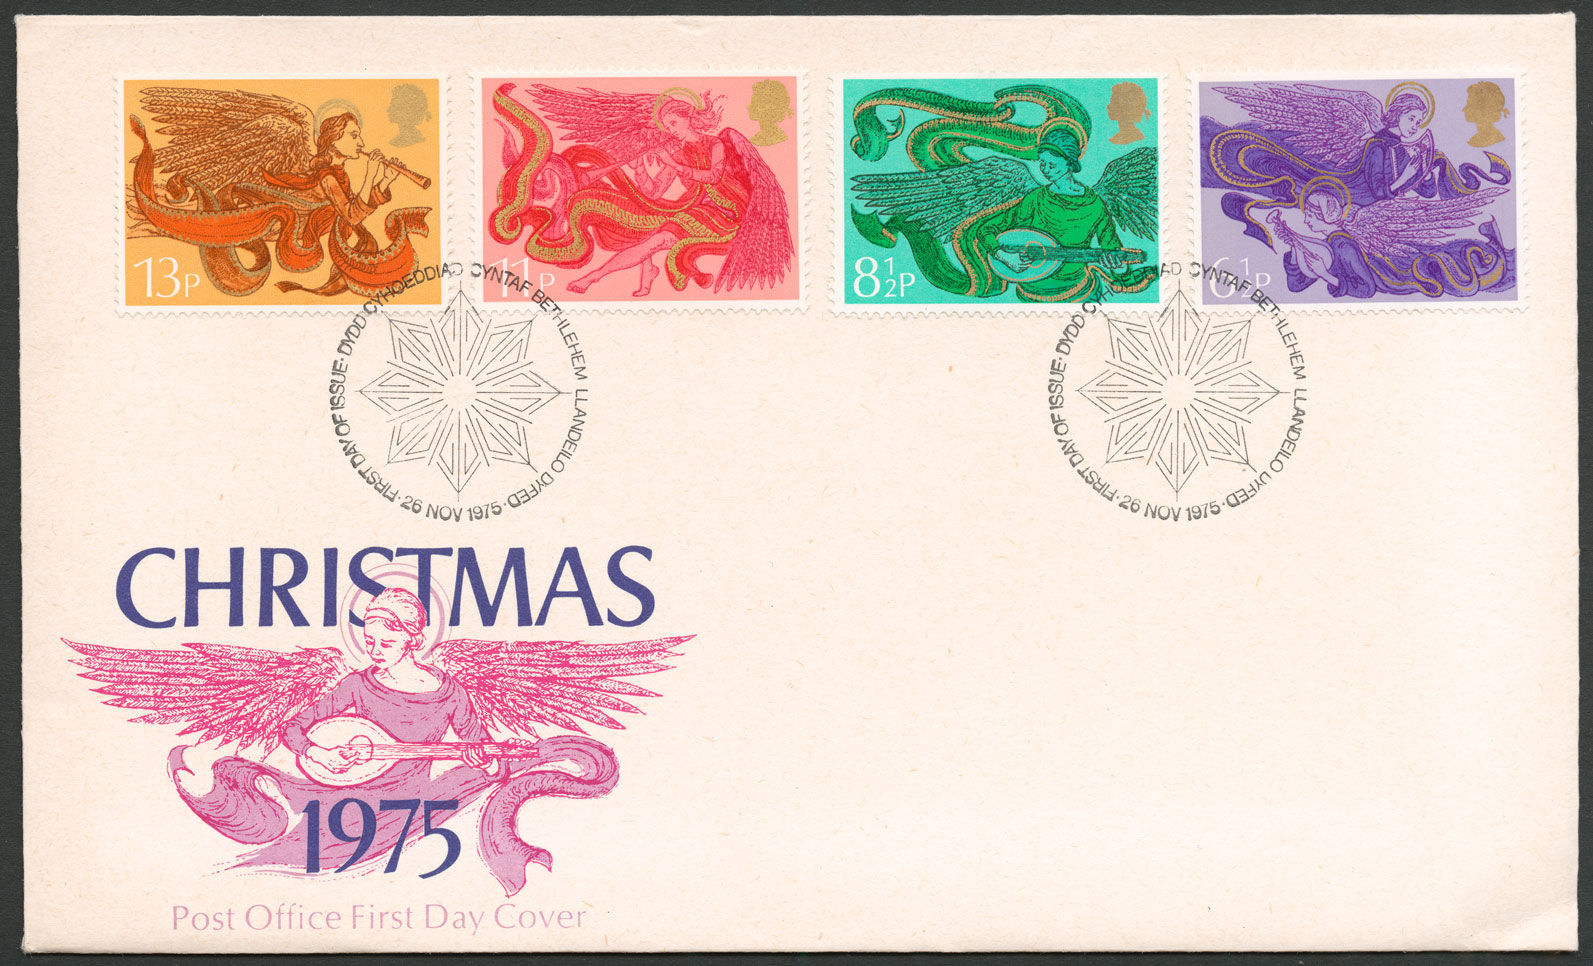 Image of a First Day Cover from 1975 featuring all issued stamps and two Bethlehem postmarks.